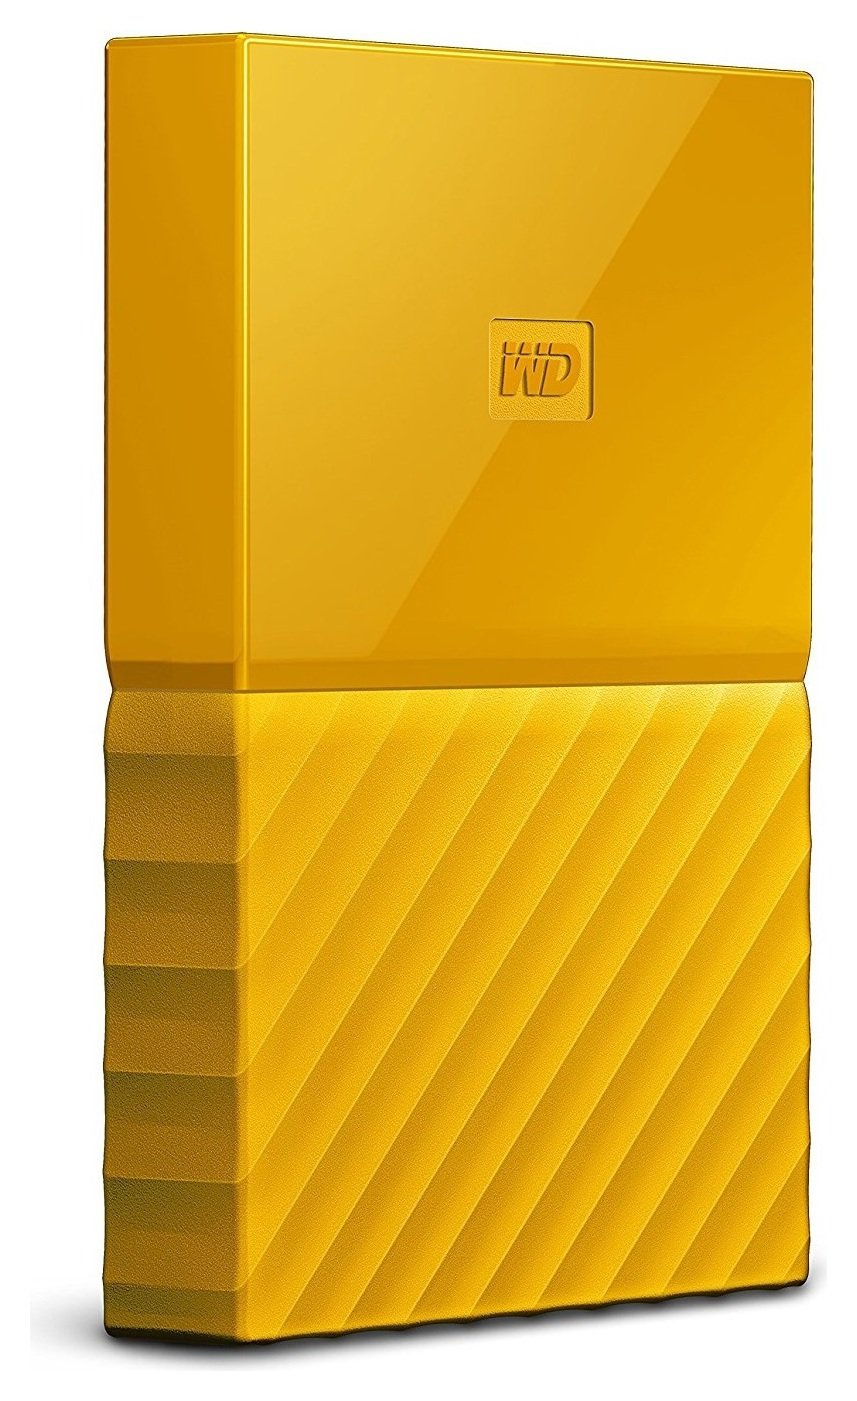 wd-1tb-my-passport-yellow